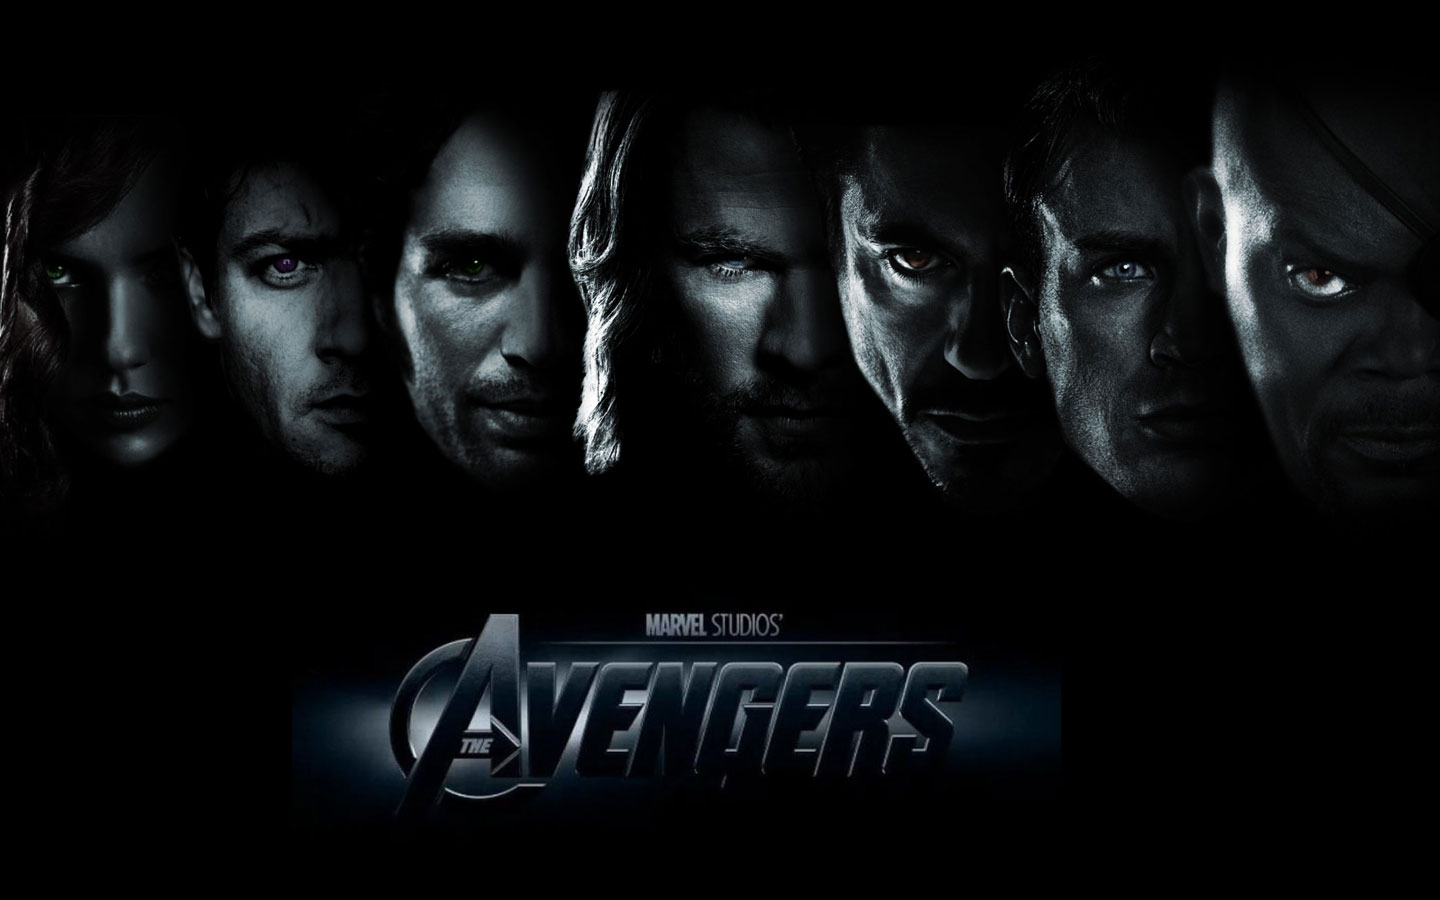 The Avengers Wallpaper HD For Windows 7 1440x900